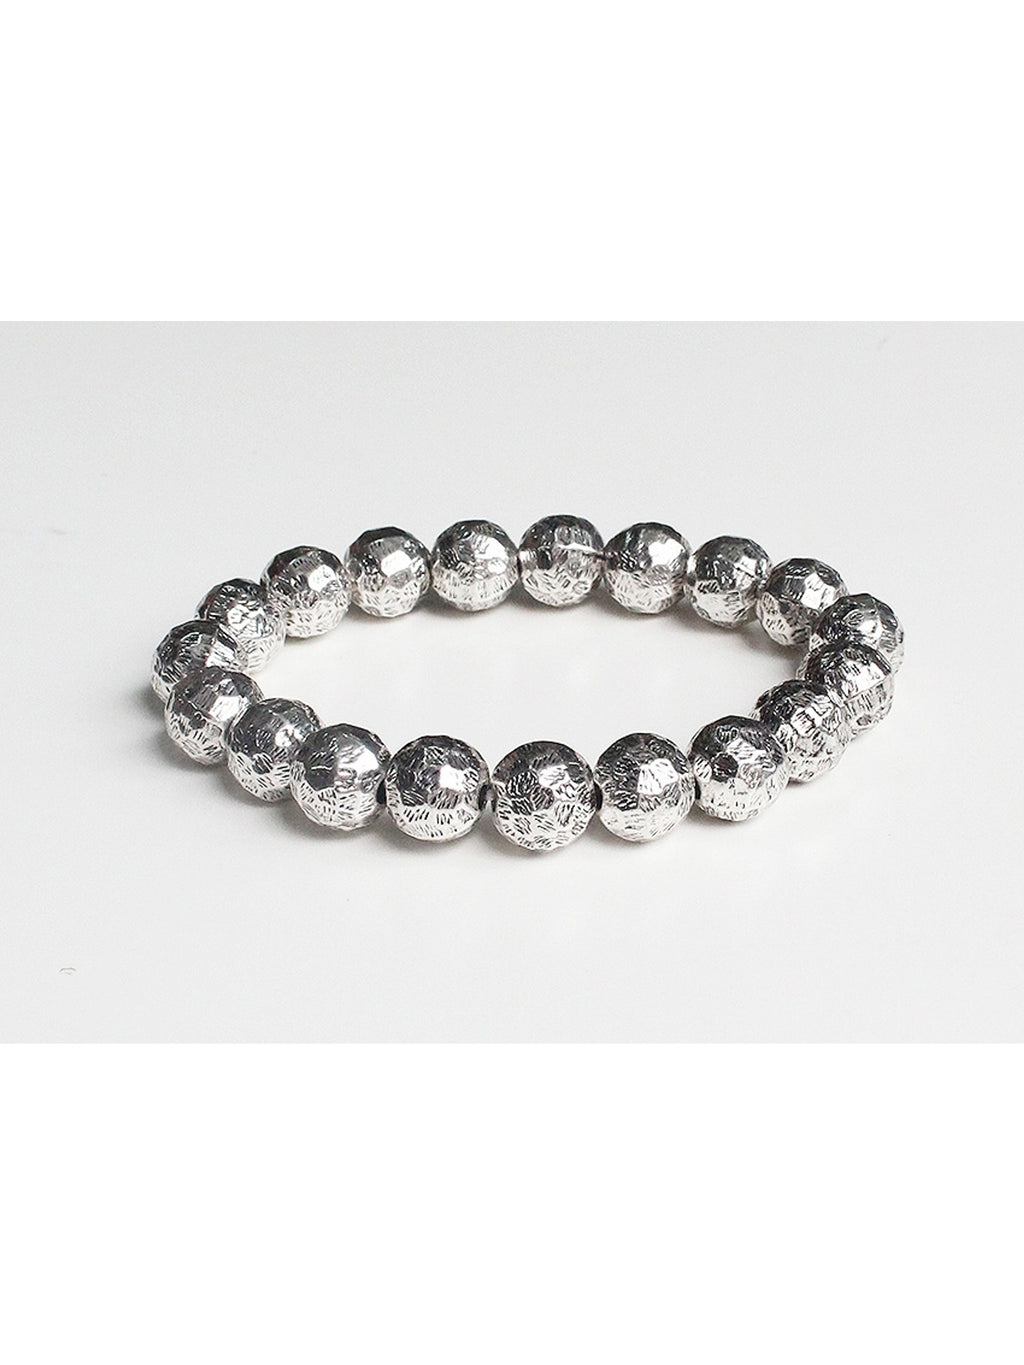 Hammered Metal Beaded Bracelet